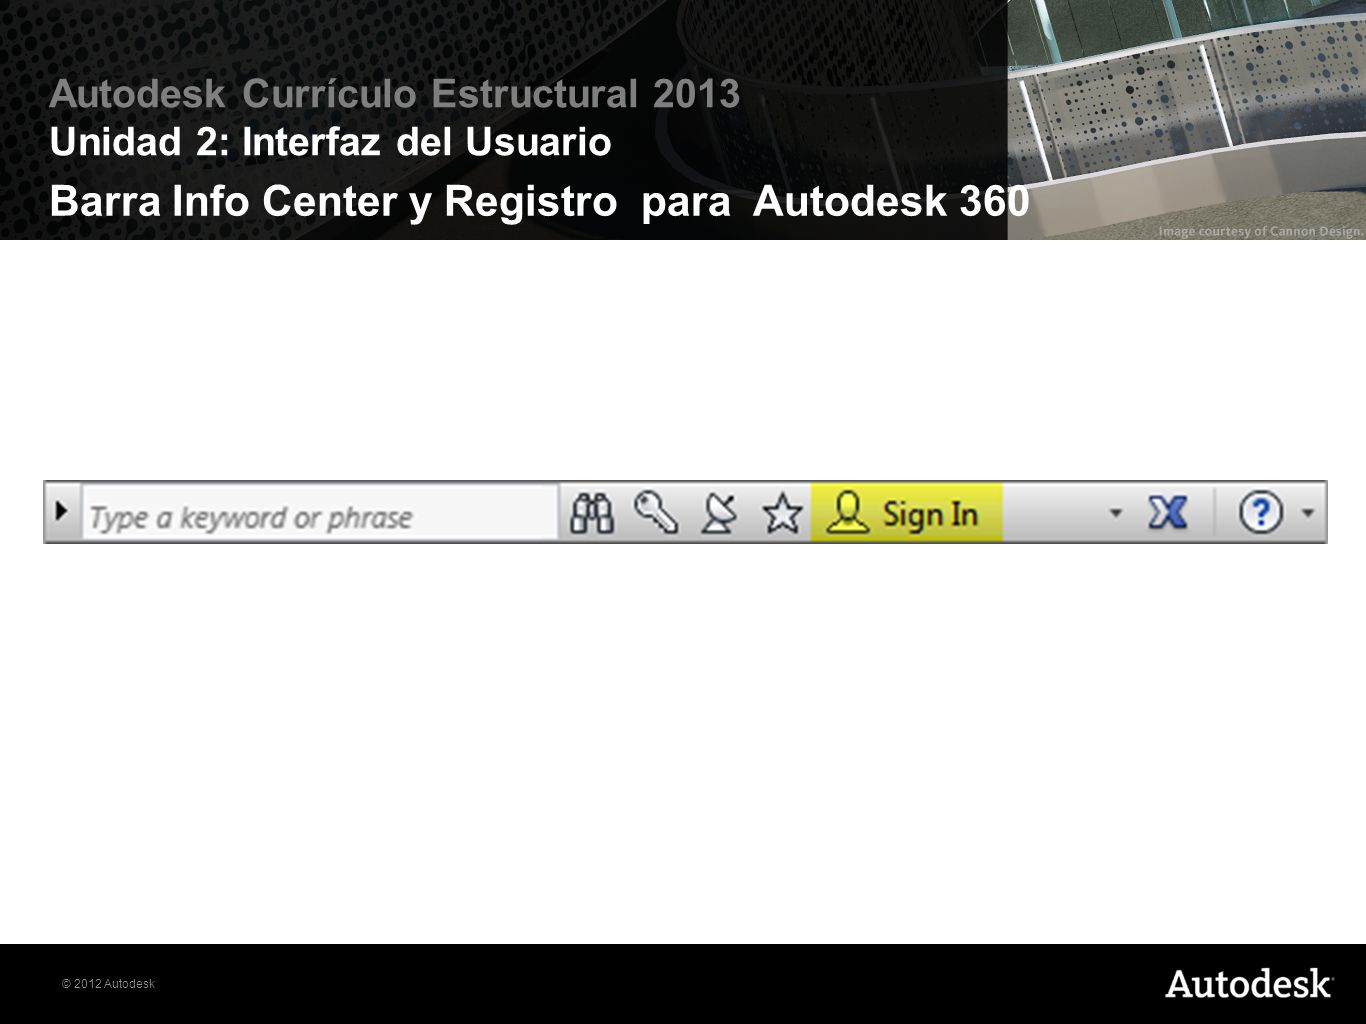 Barra Info Center y Registro para Autodesk 360